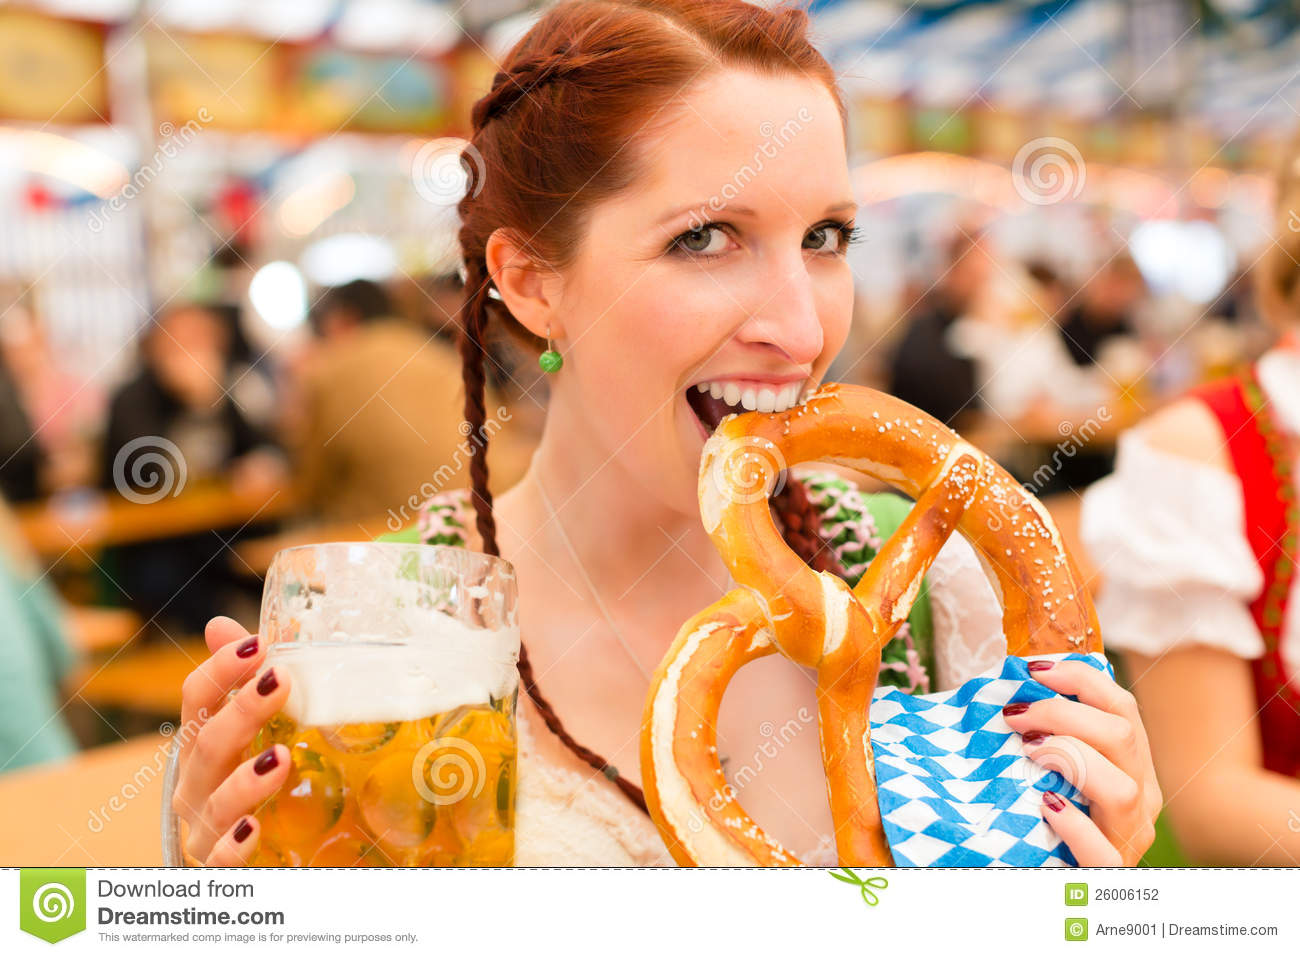 Woman with Bavarian clothes or dirndl in beer tent